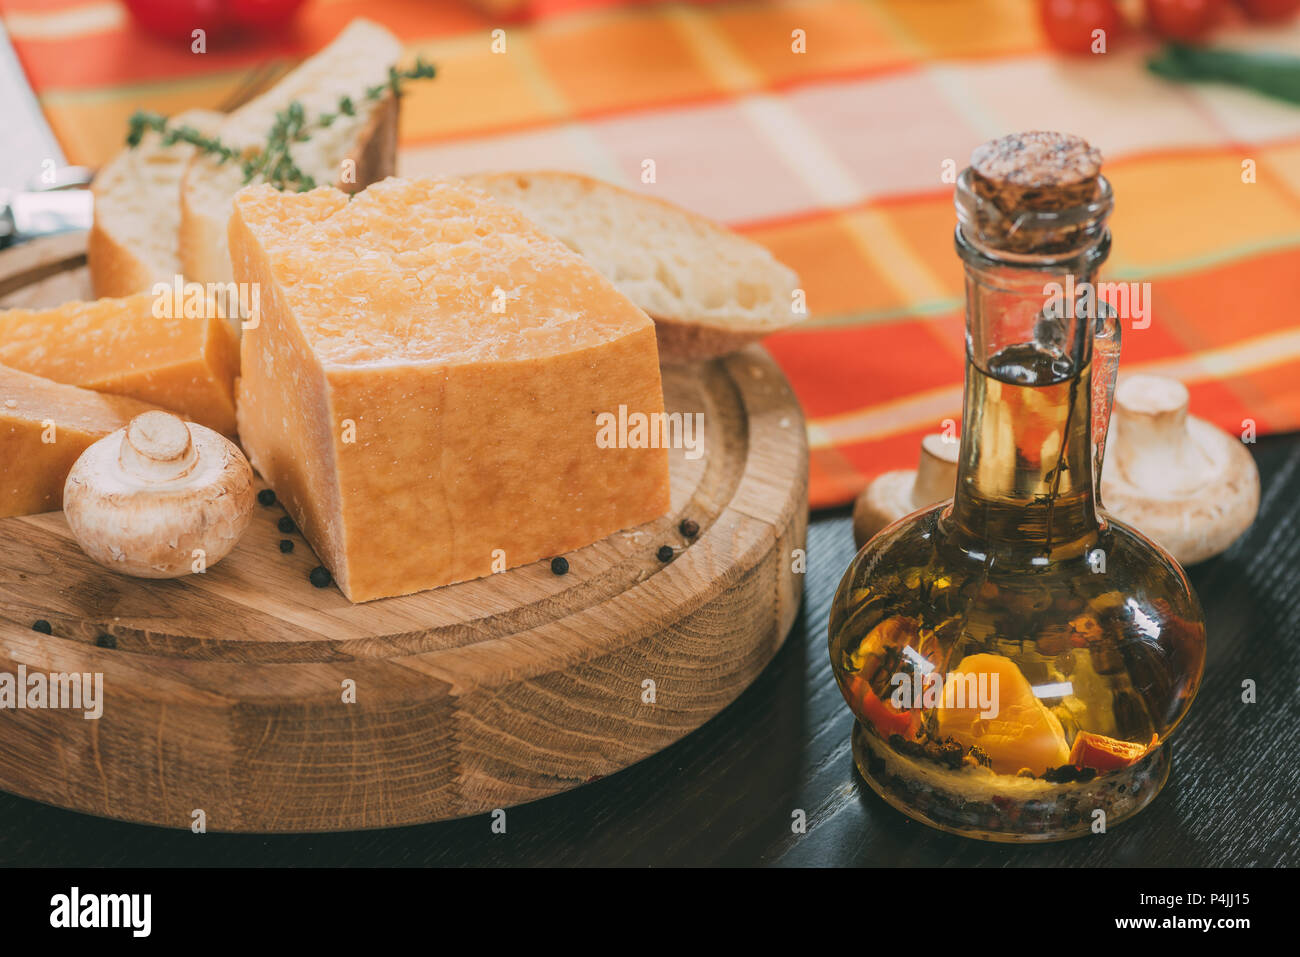 baguette and parmesan cheese on wooden cutting board and oil with spices in glass jug on table - Stock Image